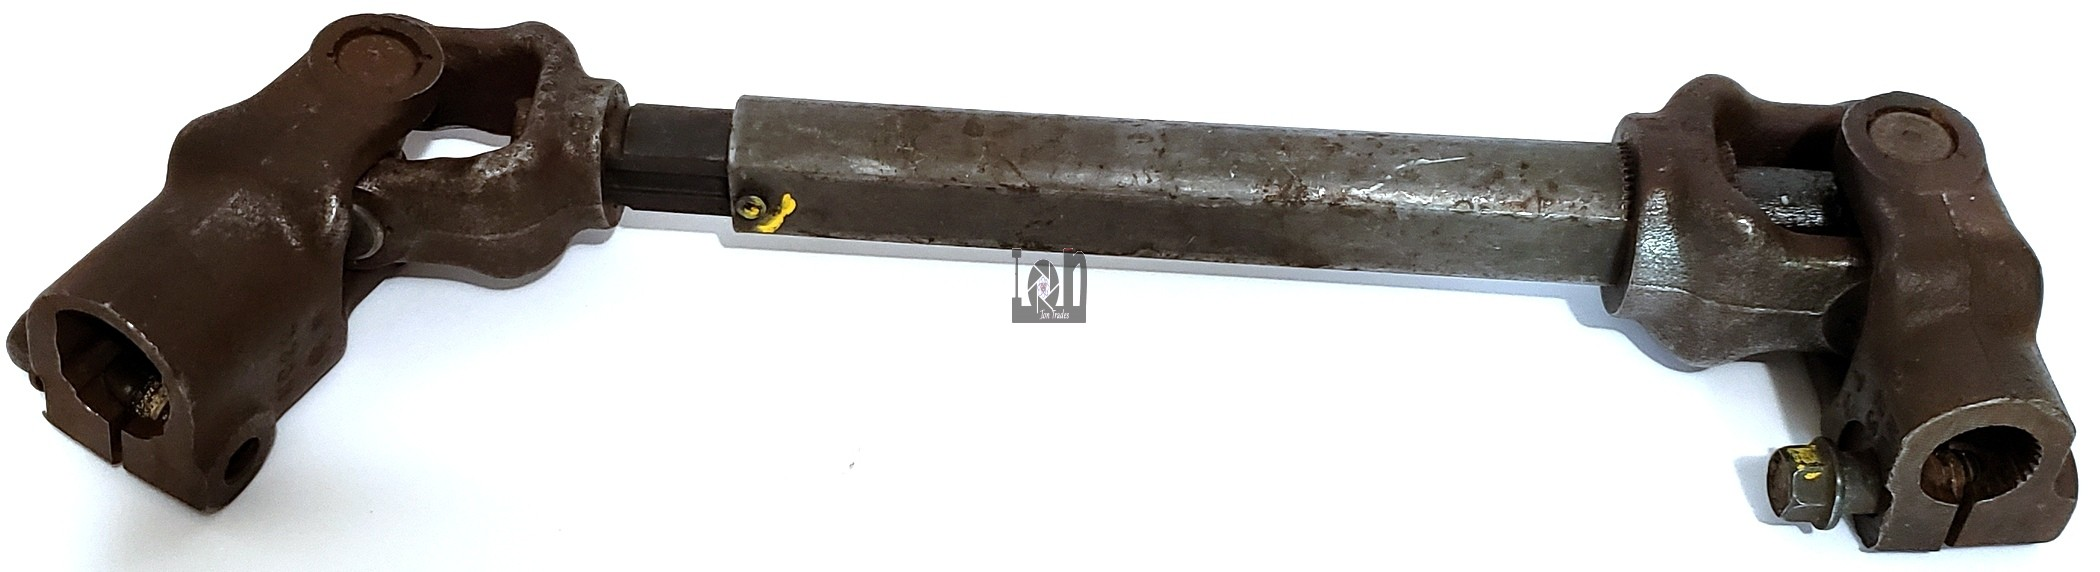 "Unknown Drive Shaft dbl Jointed 15.5"" x 21"" ATV UTV Cart Rat Rod Buggy Parts"